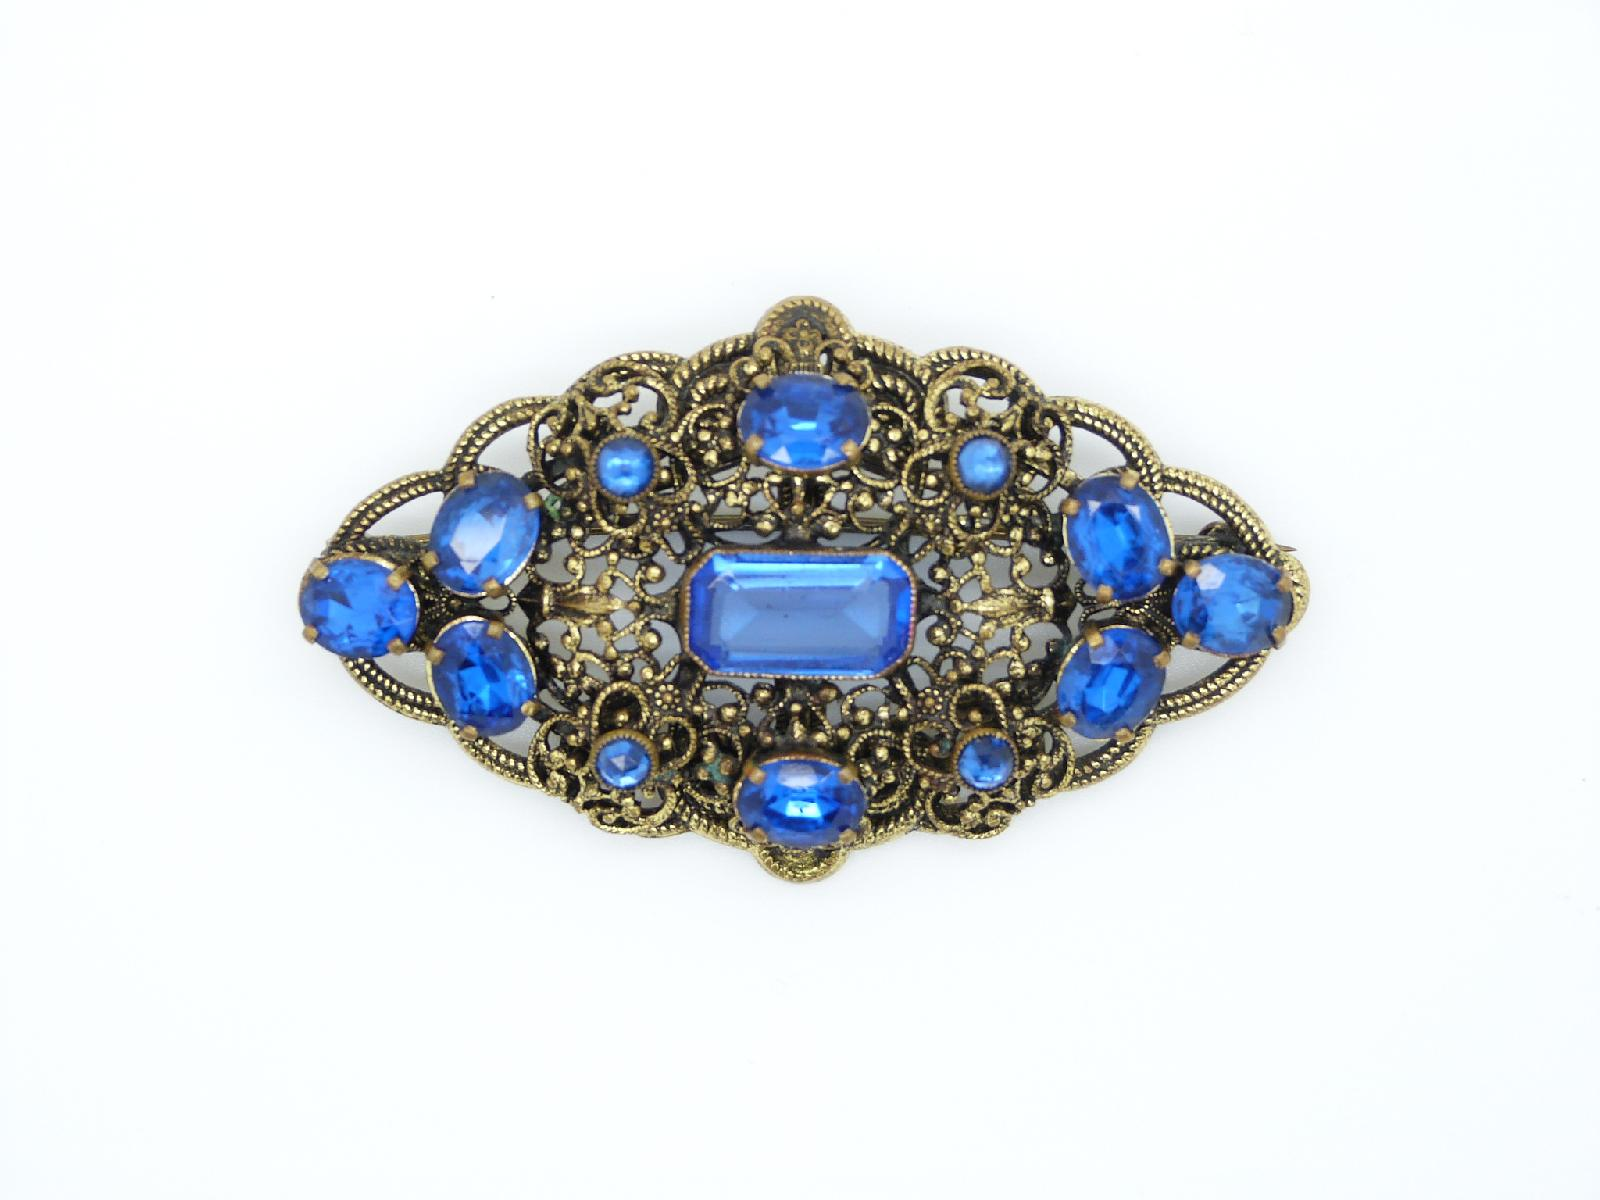 £35.00 - Vintage 30s Large Czech Filigree Lozenge Shape Blue Paste Stone Brooch